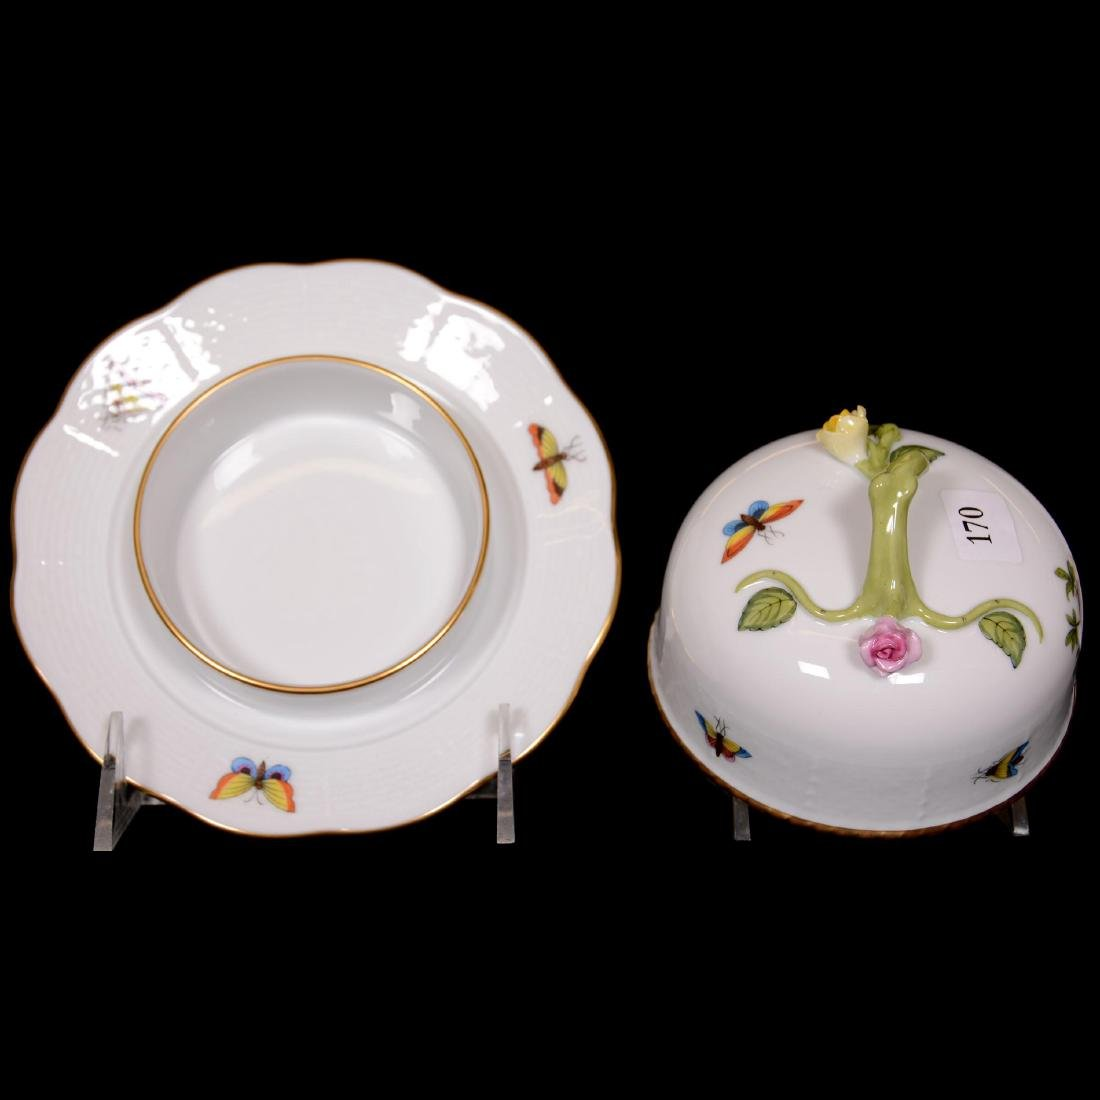 Herend Hungary Porcelain Hand Painted Covered Butterdis - 2